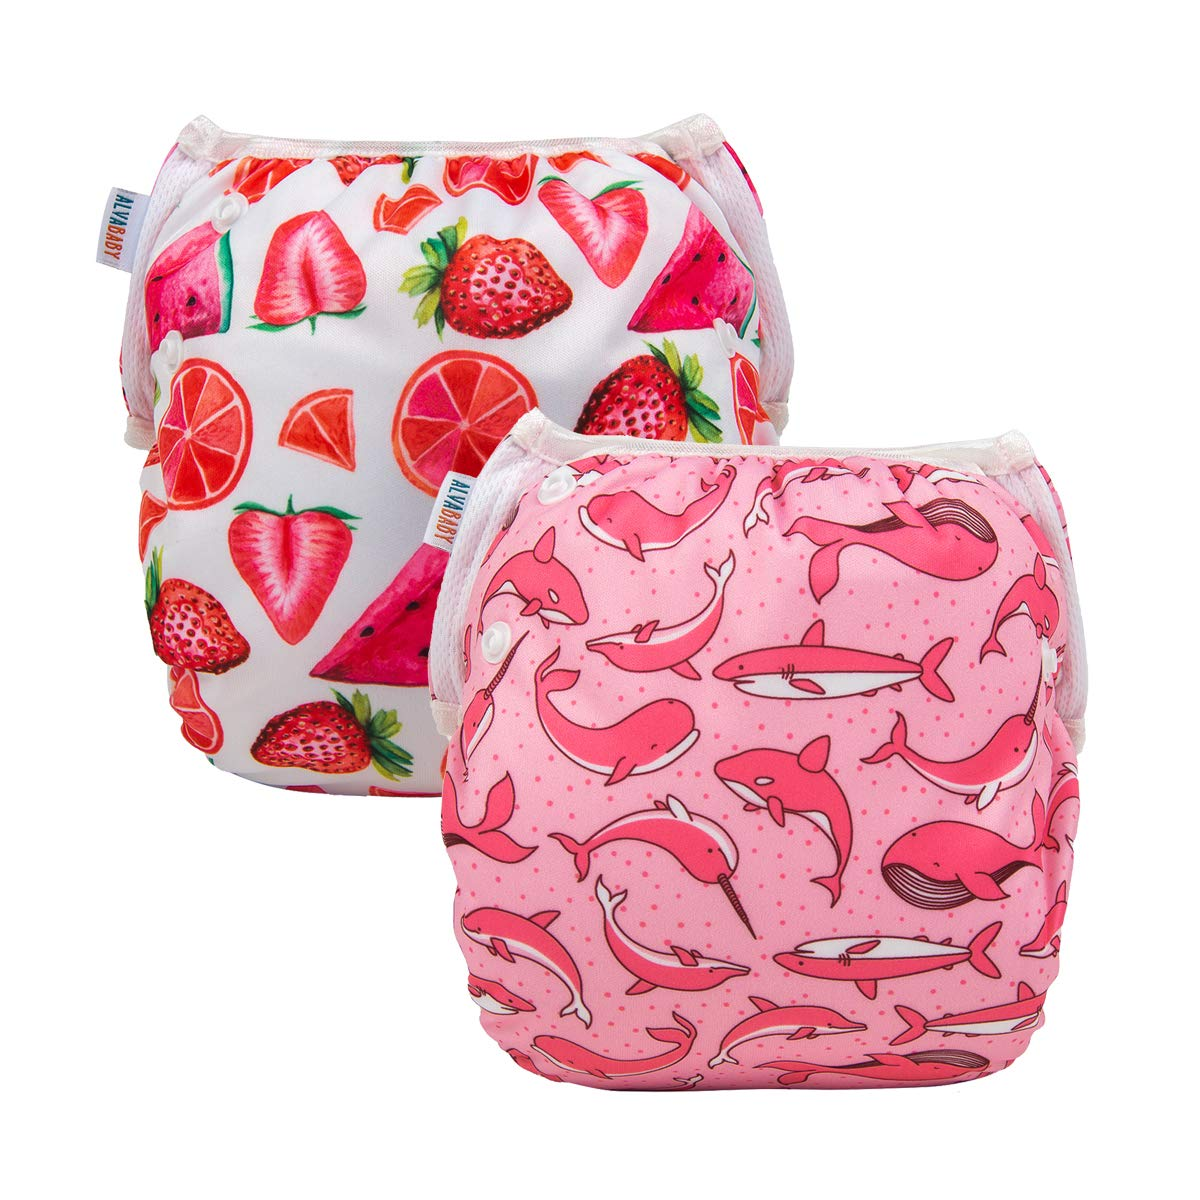 Alva Baby Swim Diapers 2pcs Reuseable Washable & Adjustable for Swimming Lesson & Baby Shower Gifts 0-2 Years (Pretty in Pink) YK48-49